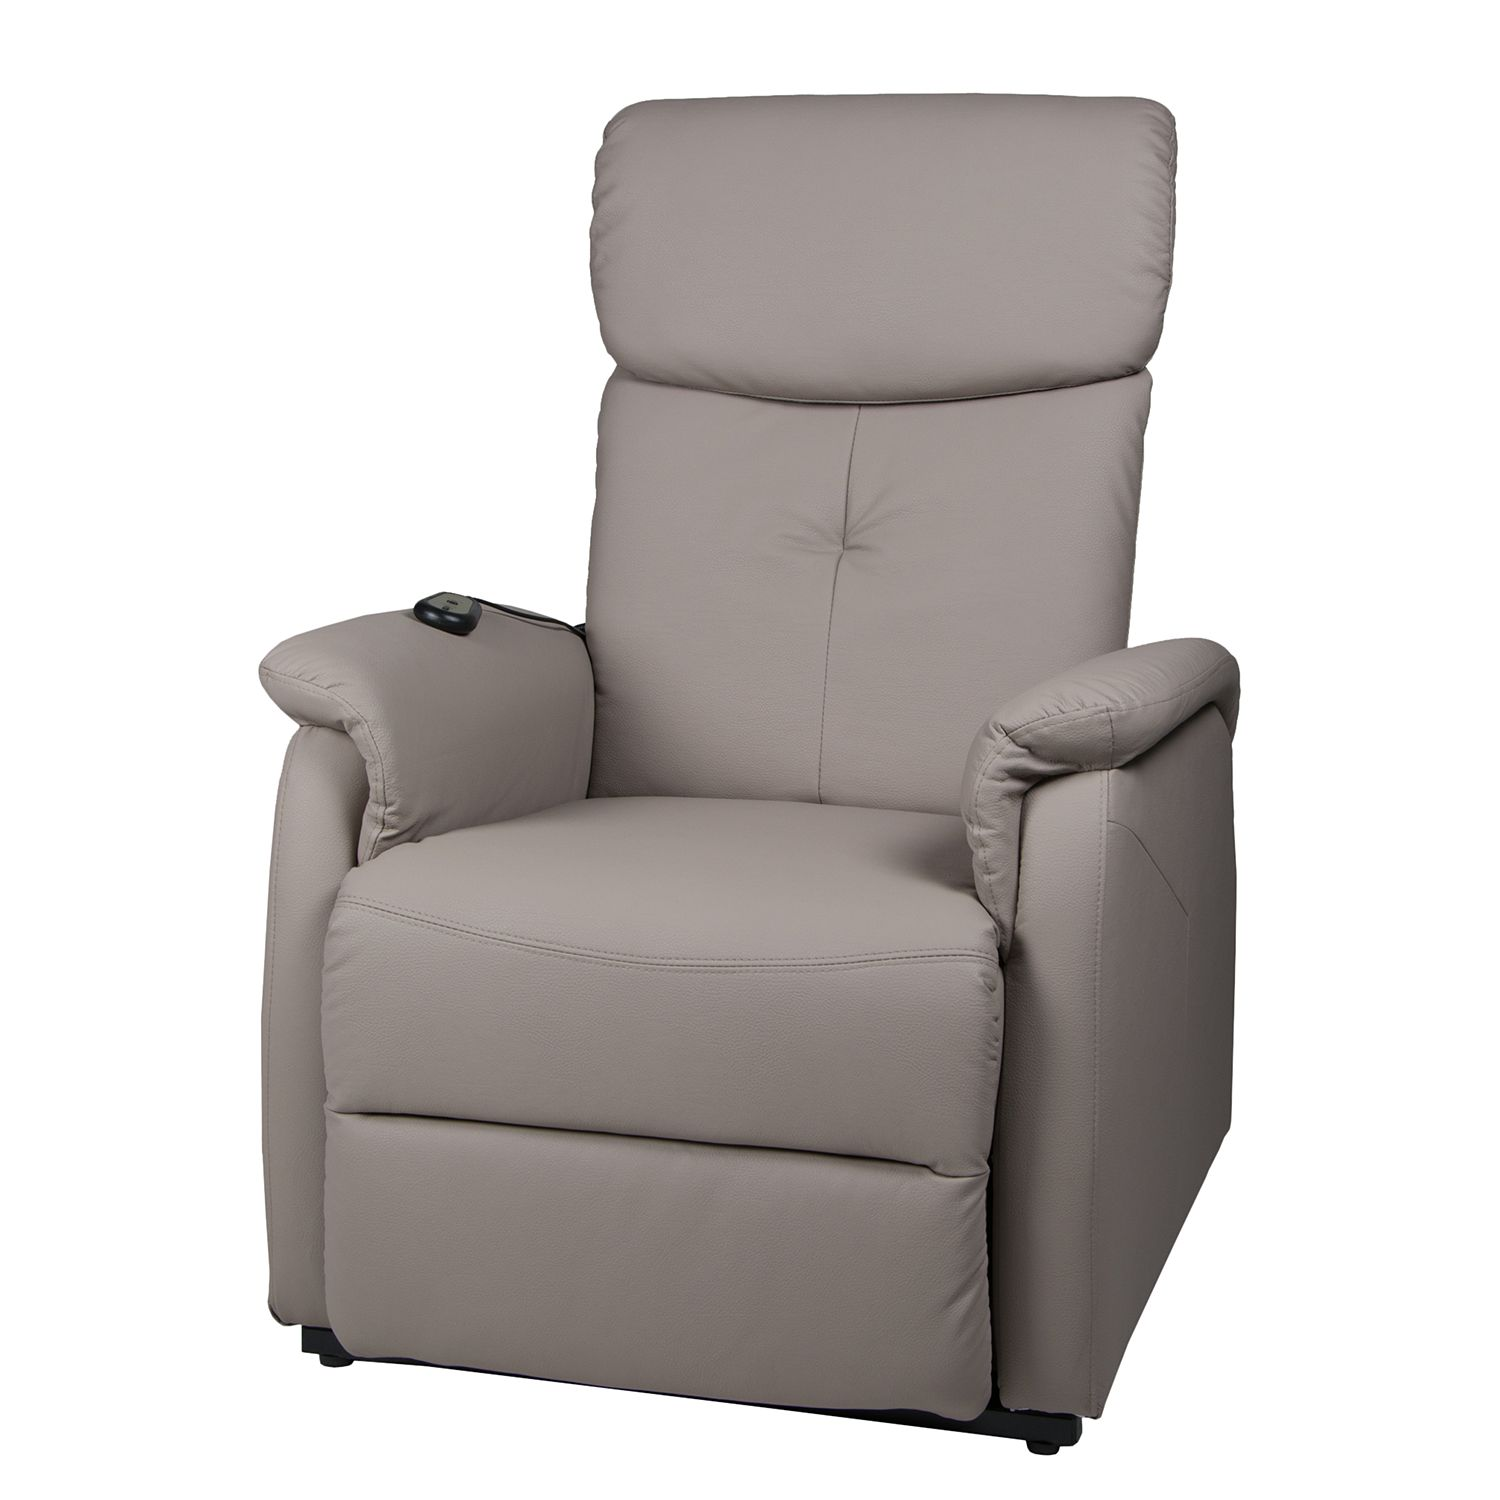 goedkoop Tv fauteuil Pavlos kunstleer beige Duo Collection